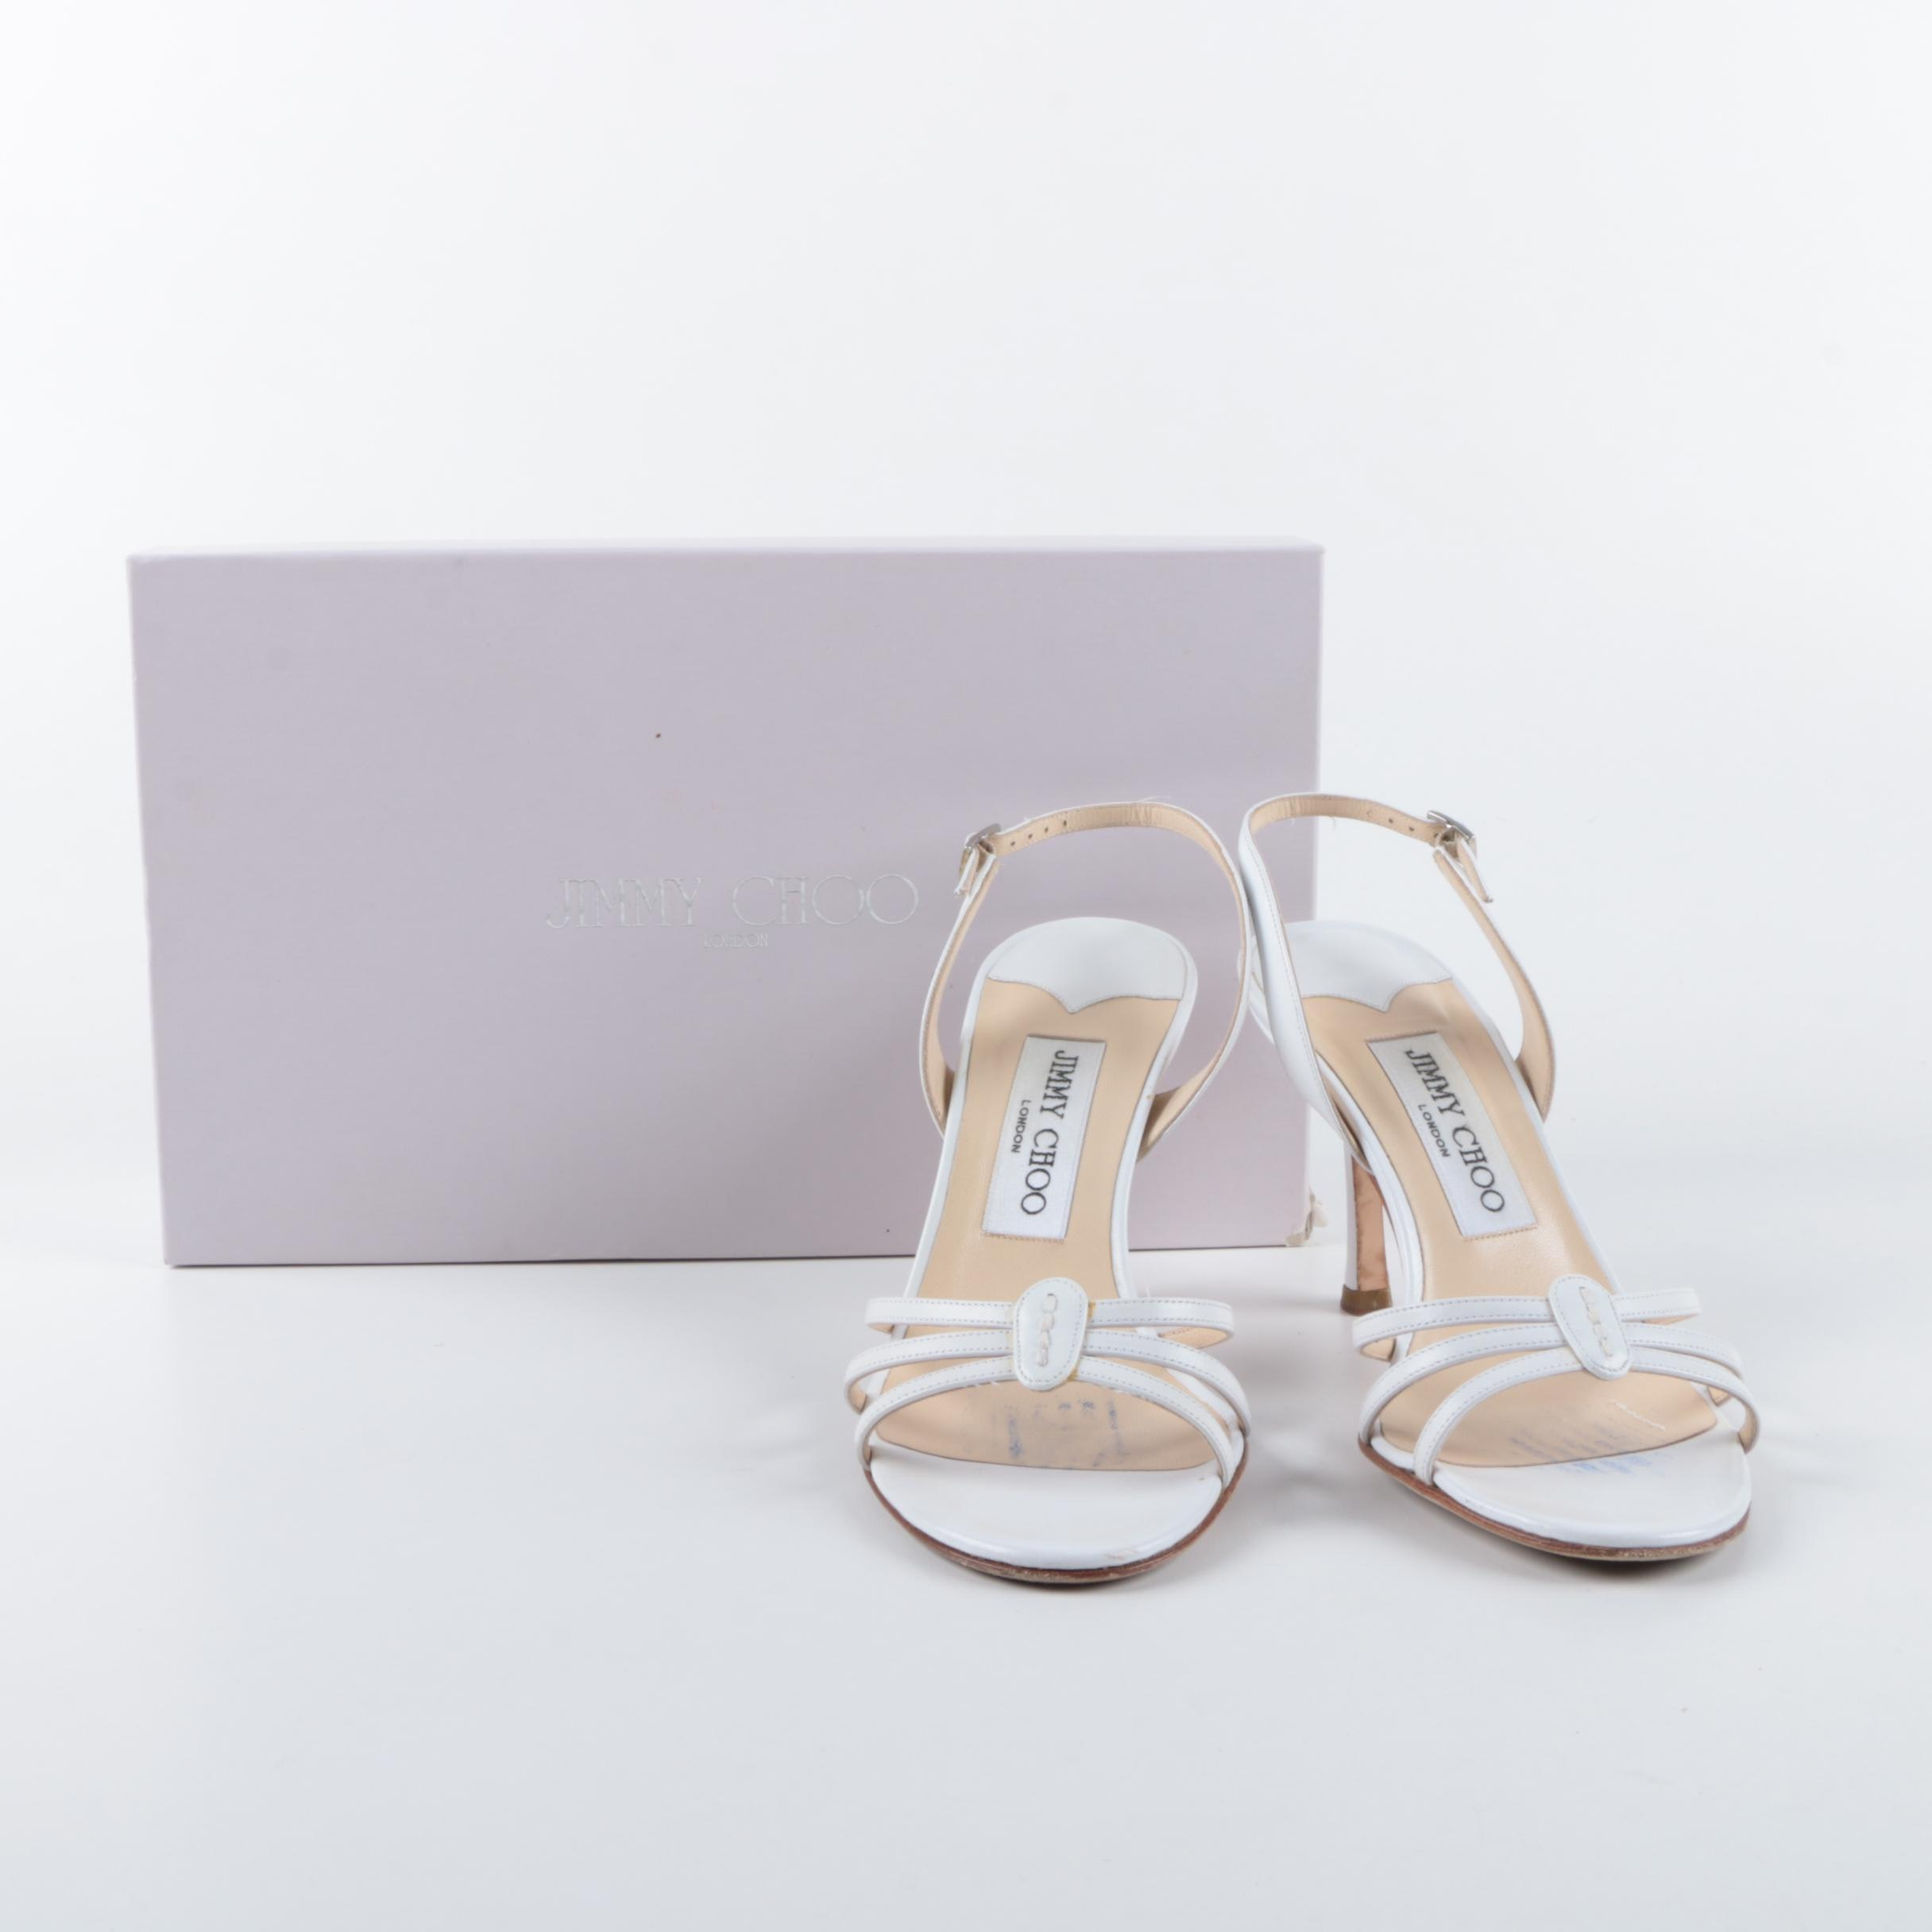 2005 Jimmy Choo White Leather Slingback Sandals In Original Box